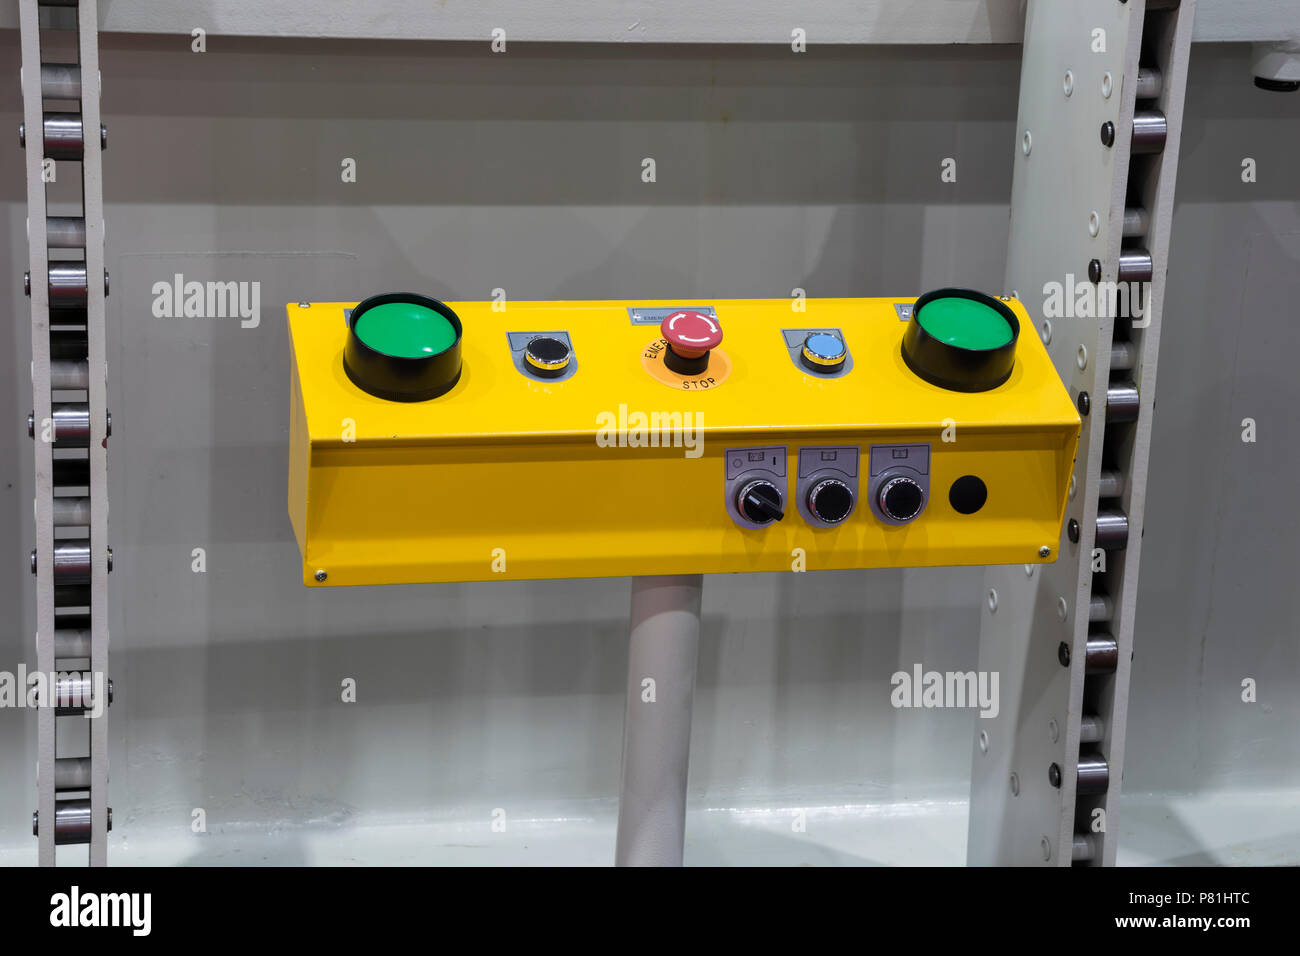 green buttons push switch for forging machine - Stock Image